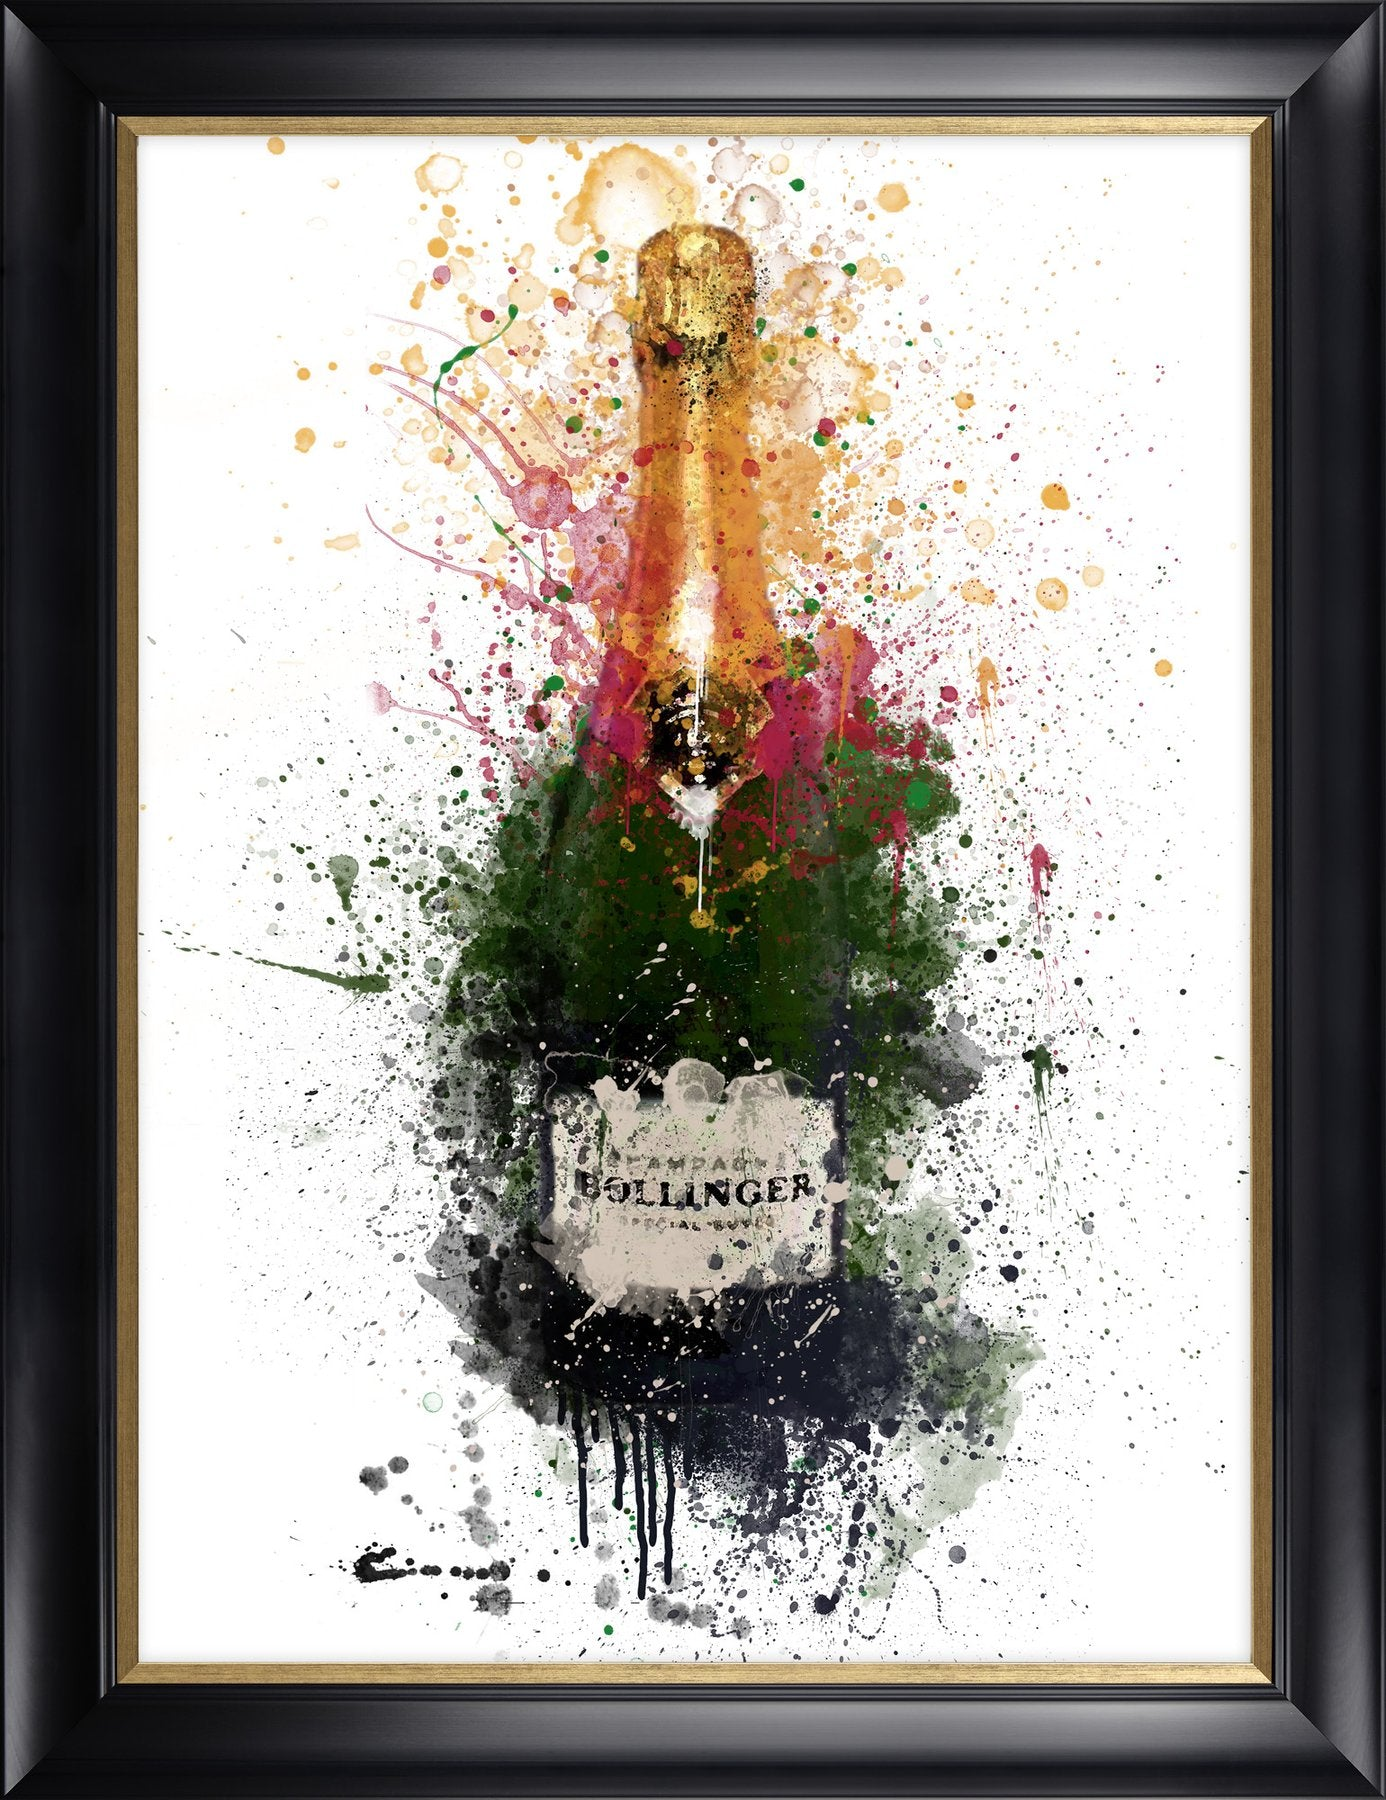 Bollinger framed print by Pop & Toast from Artworx Gallery